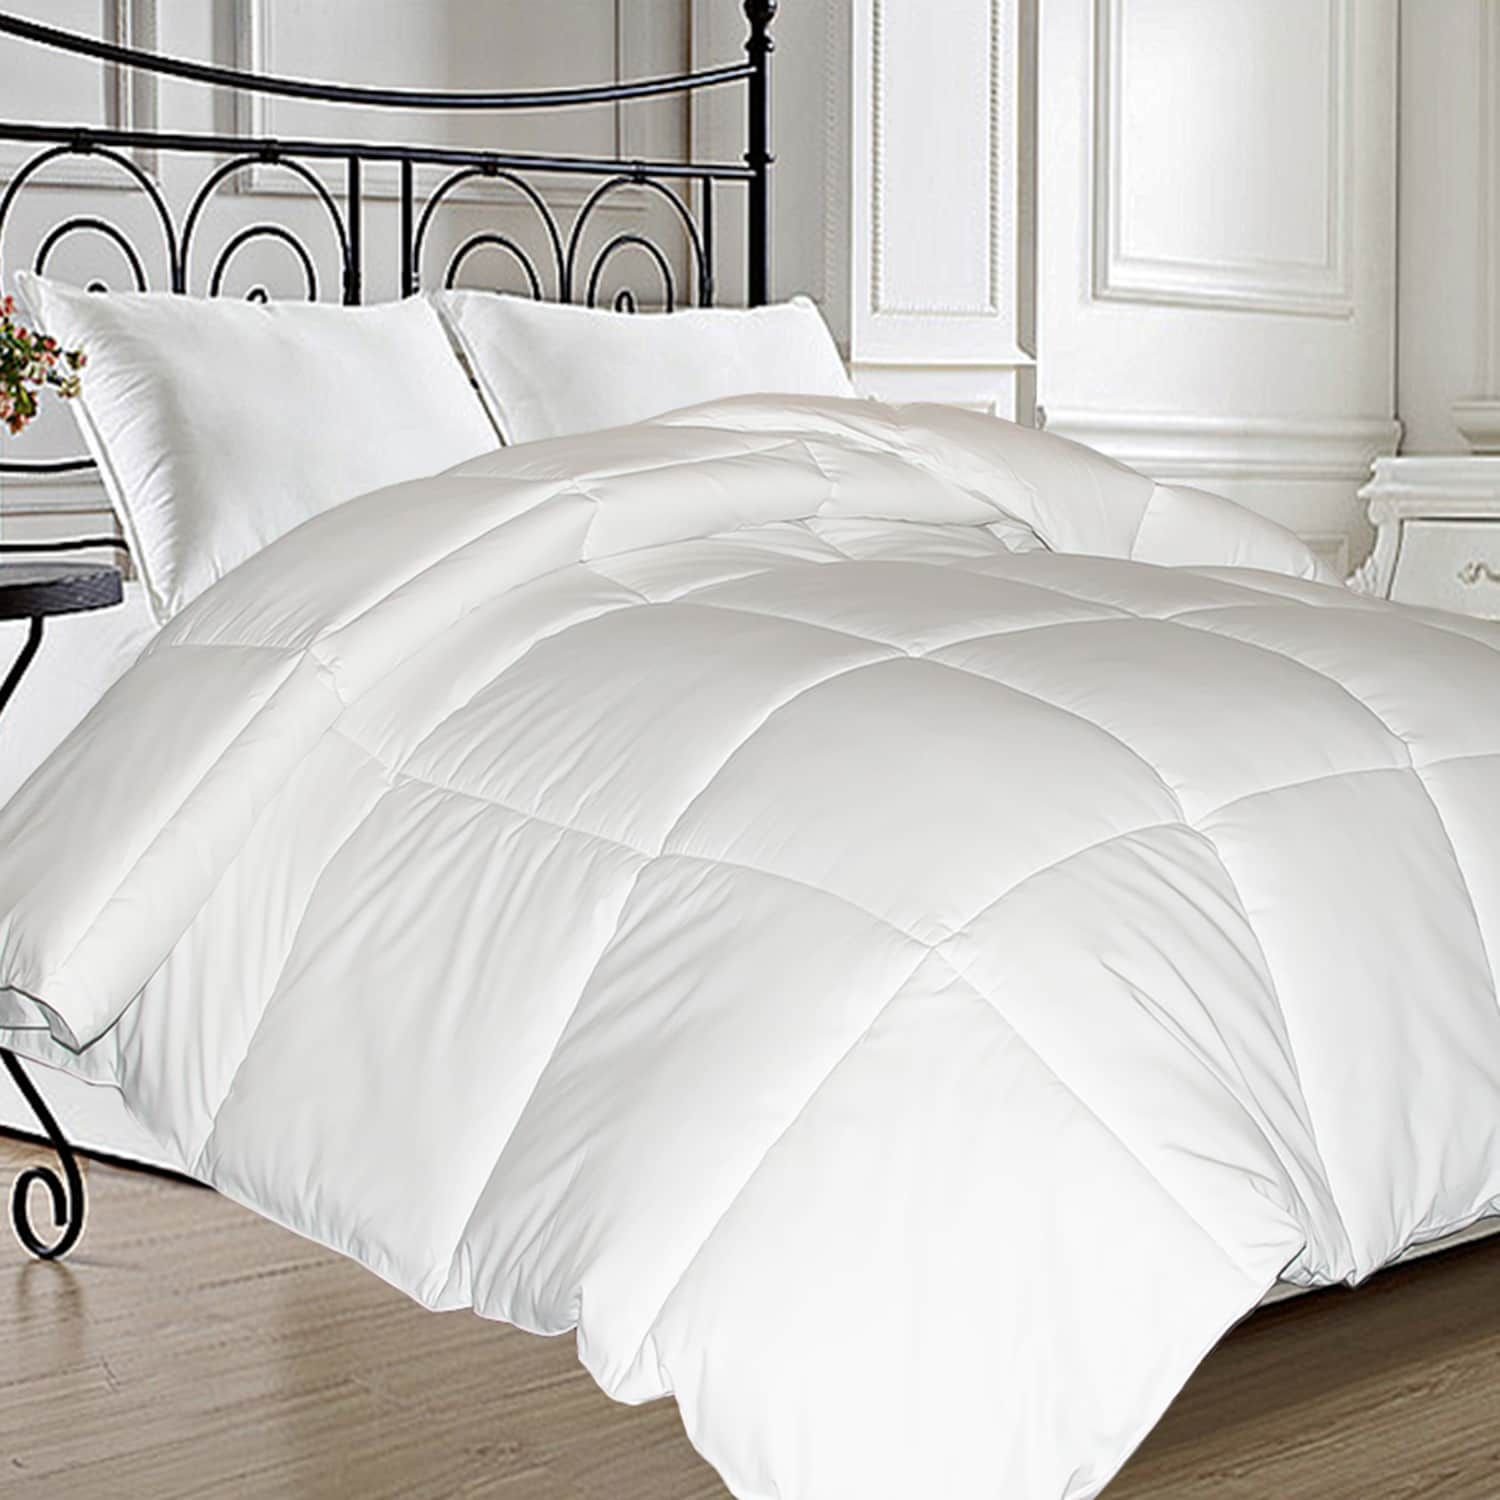 Royal Majesty Down Feather Comforter Majesty Royal Comforter Feather Down Comforter Down Comforters Feather Comforter